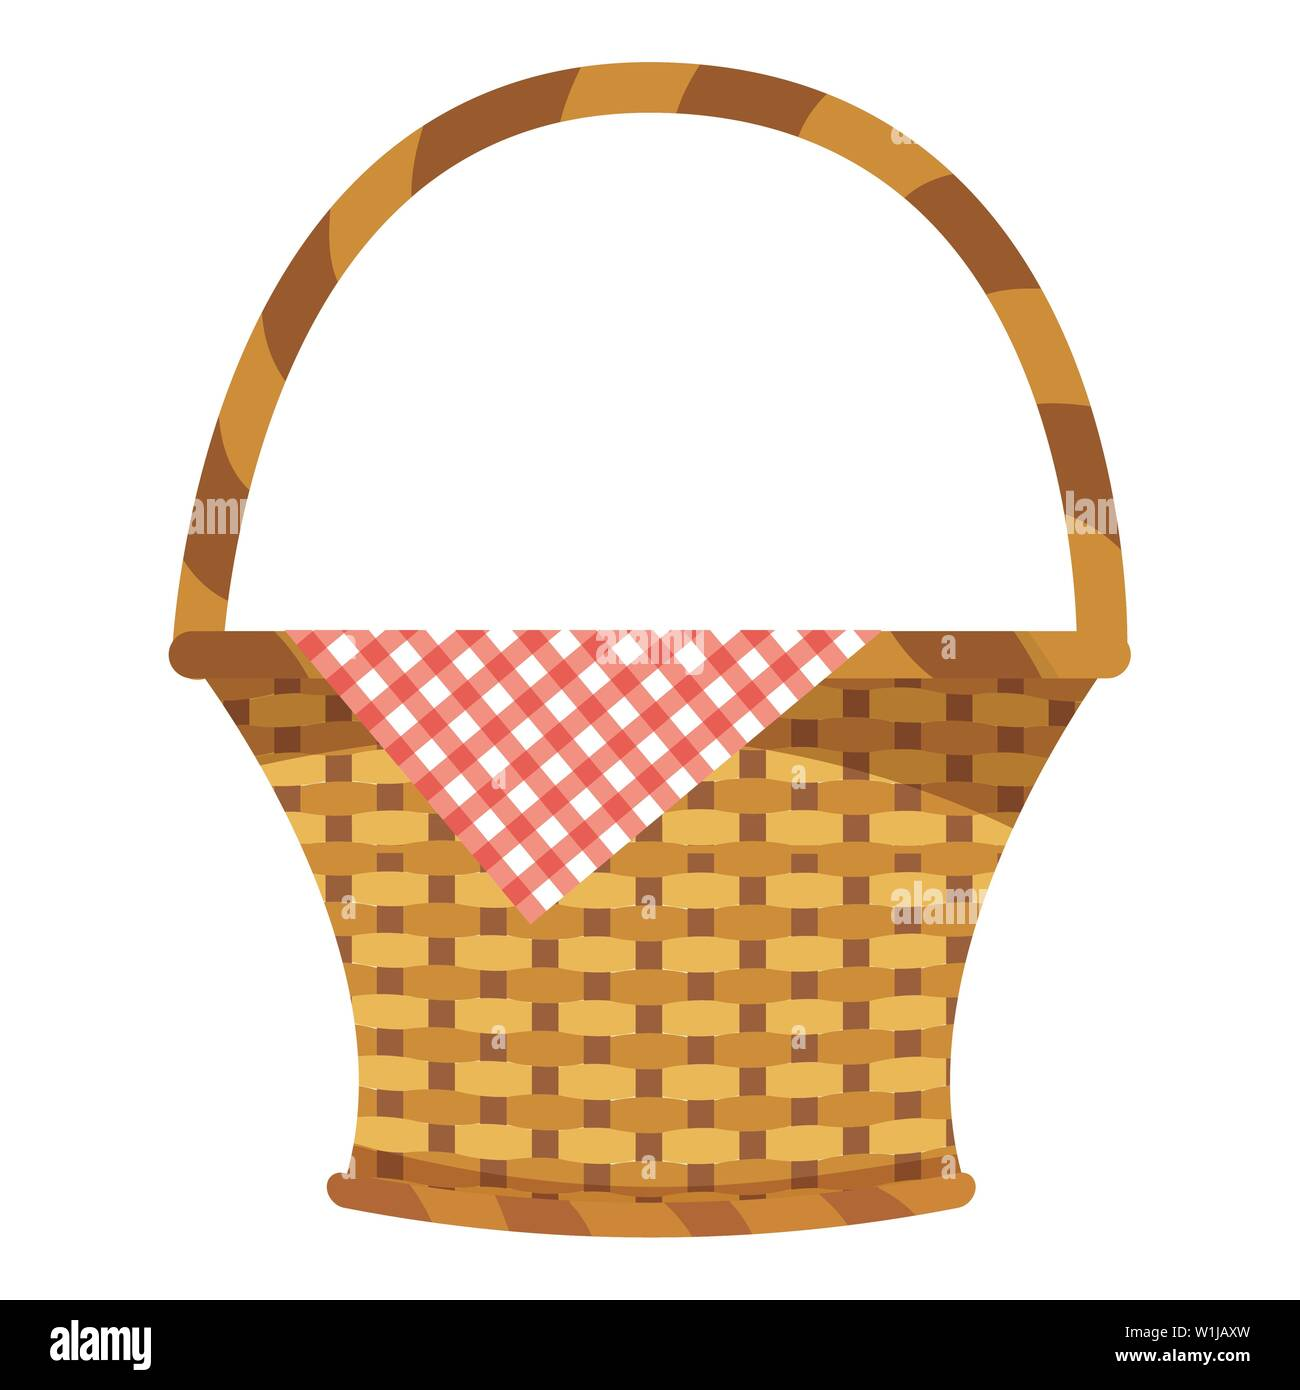 Picnic basket design, Food summer outdoor leisure healthy spring lunch and meal theme Vector illustration - Stock Vector